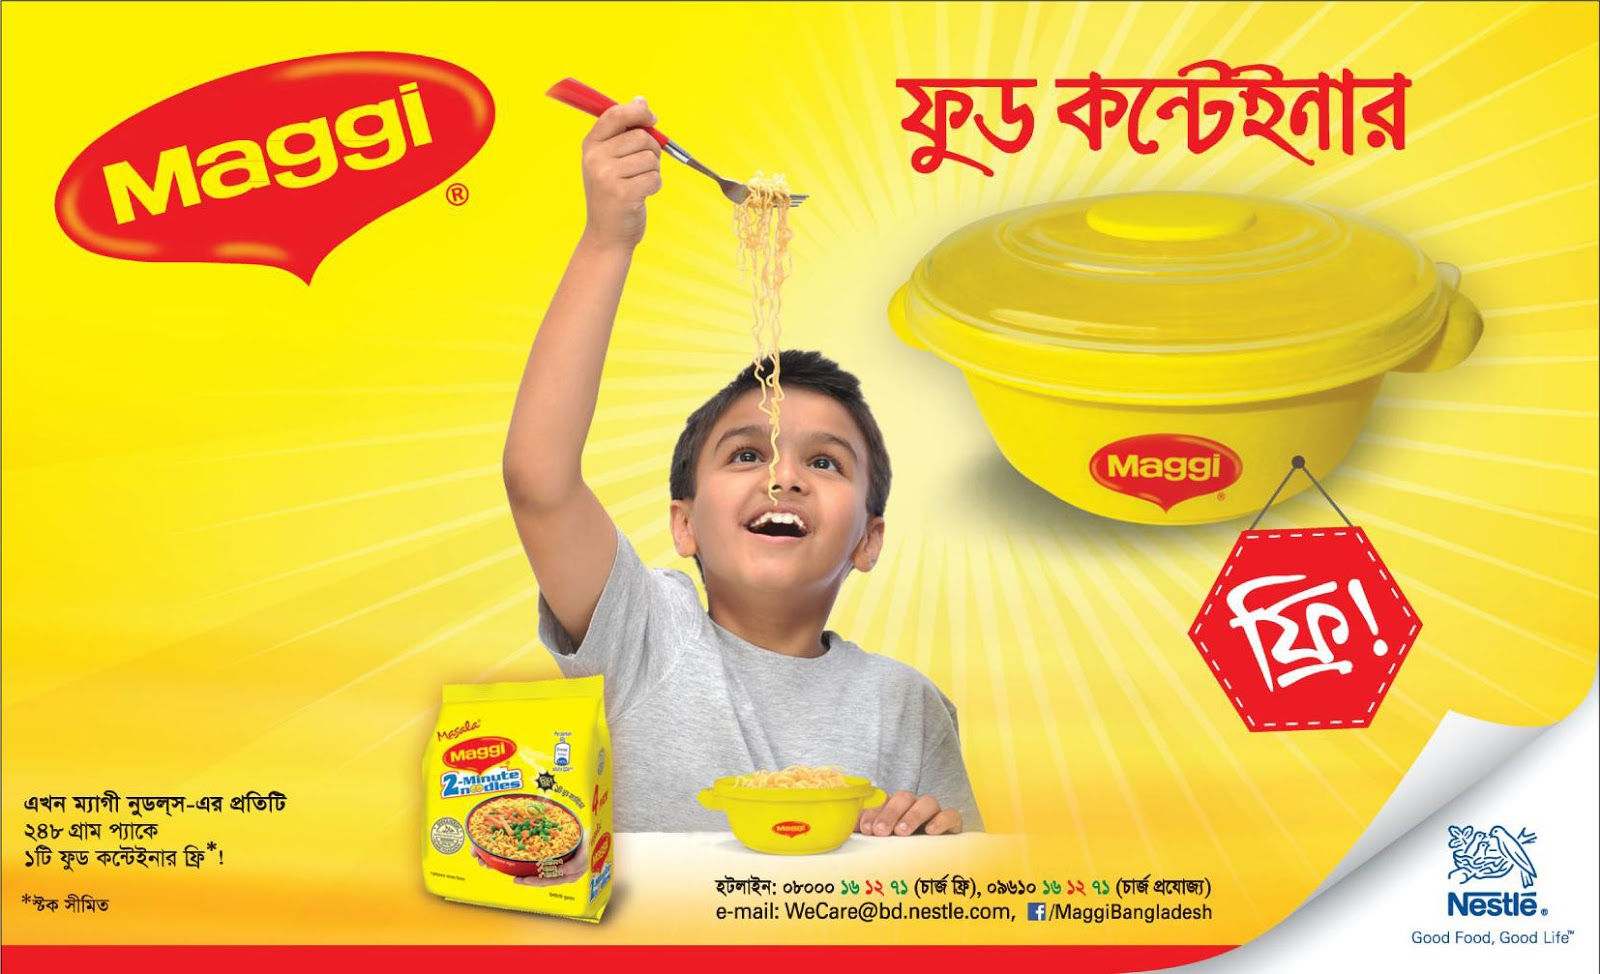 maggi noodles brand loyalty literature review Nestle south asia is busy incinerating $50 million worth, 400 million packets of maggi noodles, undeniably its most popular brand that exists in the indian market since 1984 and dominates 80% of it.